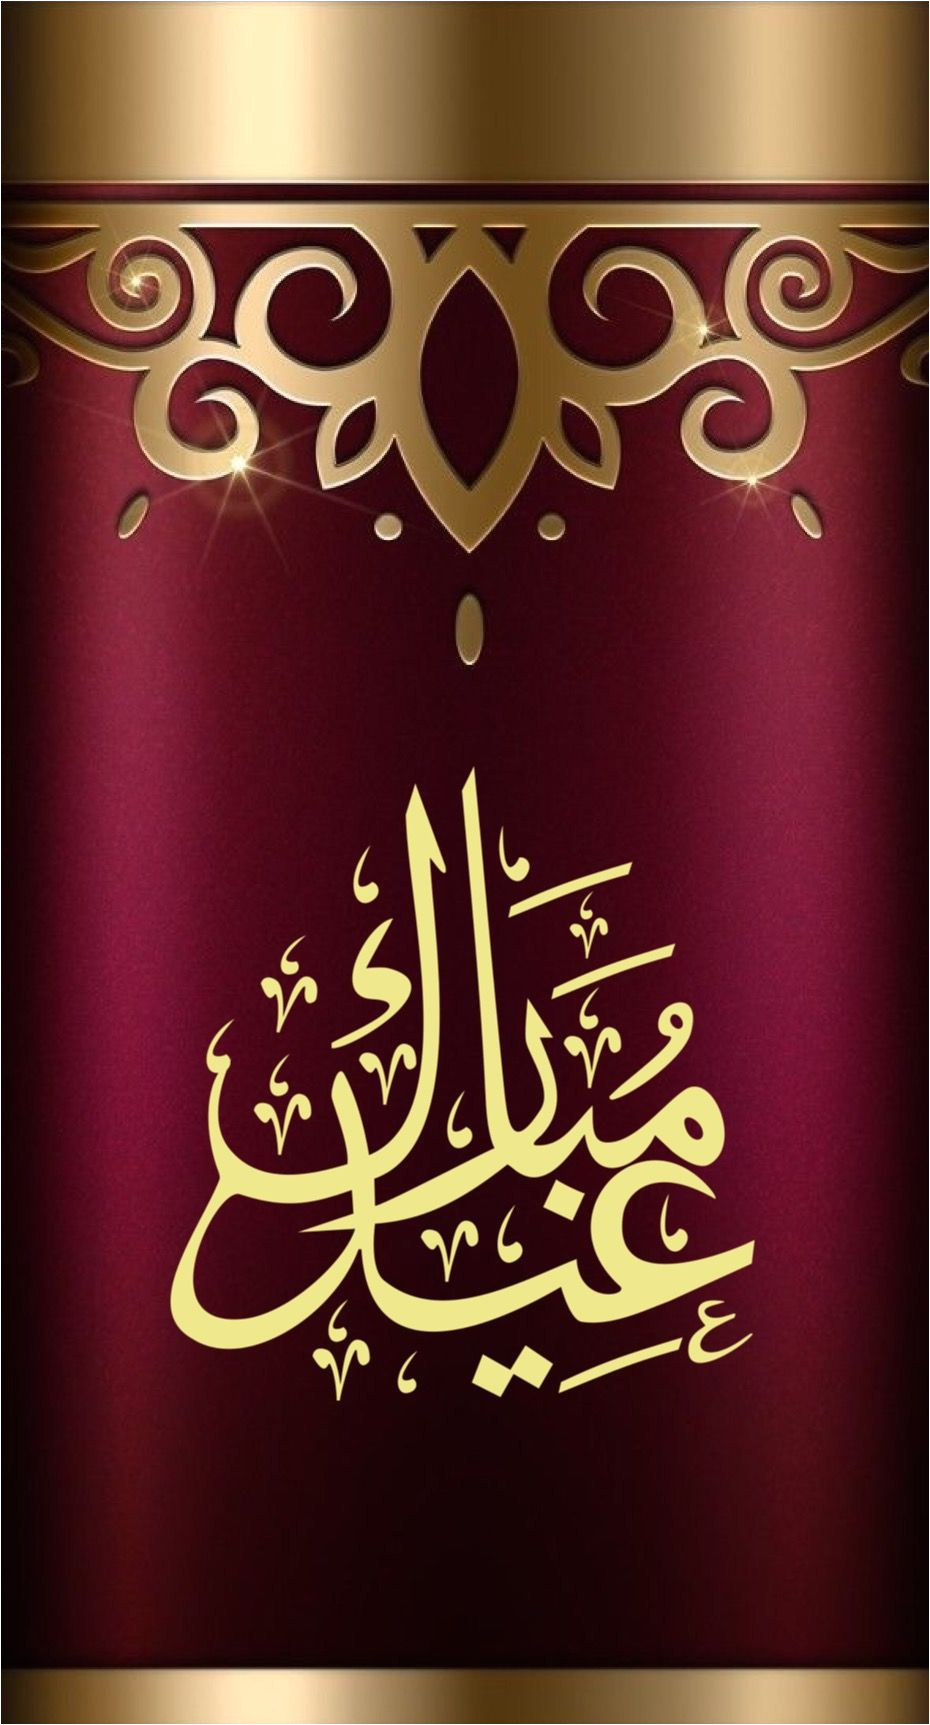 Eid Wishes Card for Husband Pin by Skittchen On U U O O U U O U Oau O O U O Eid Mubarak with